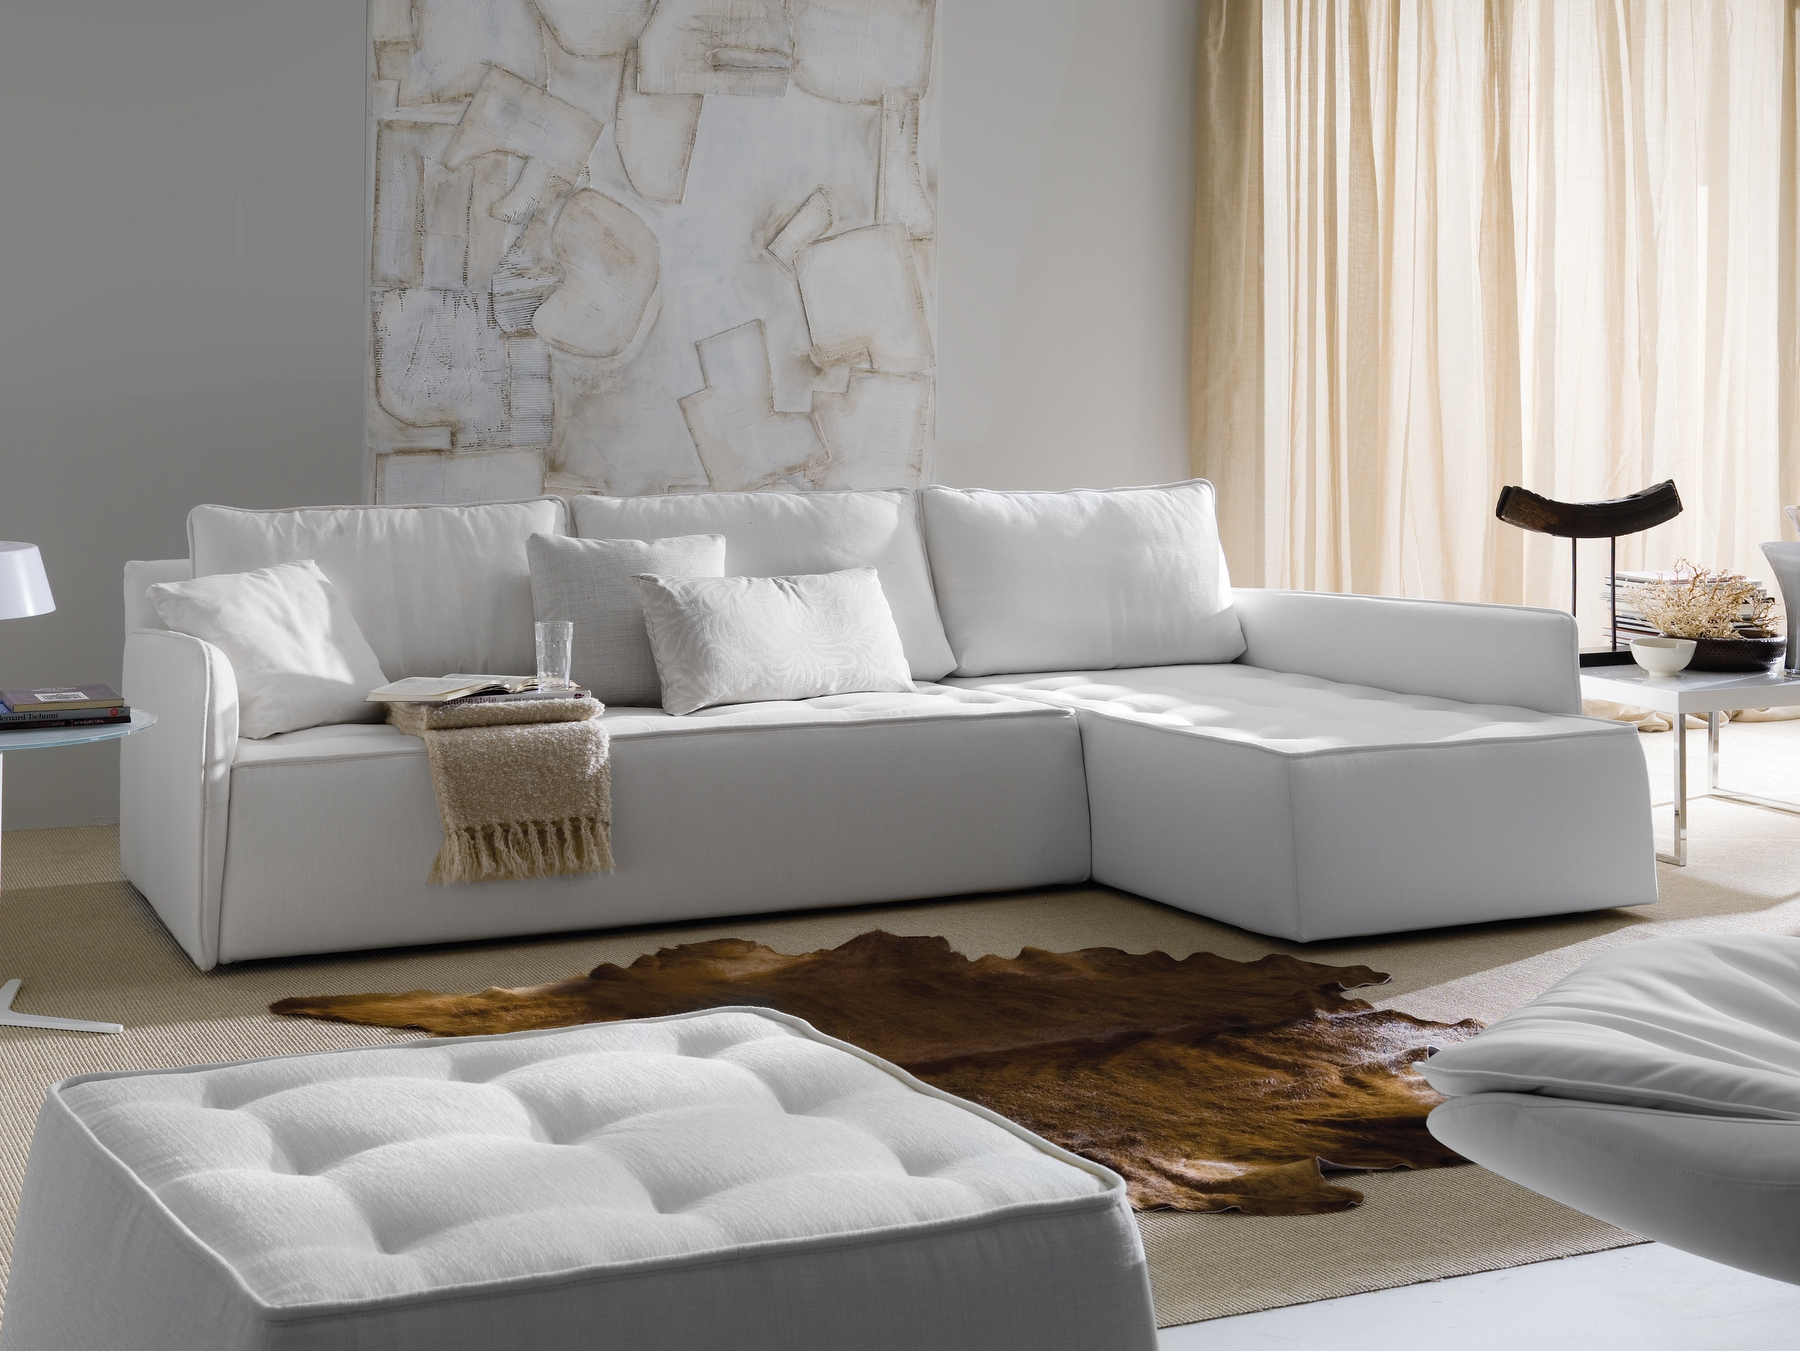 Antares Corner Sofa Bontempi Casa Design Marco Corti Intended For Sofas With Removable Covers (Image 1 of 15)